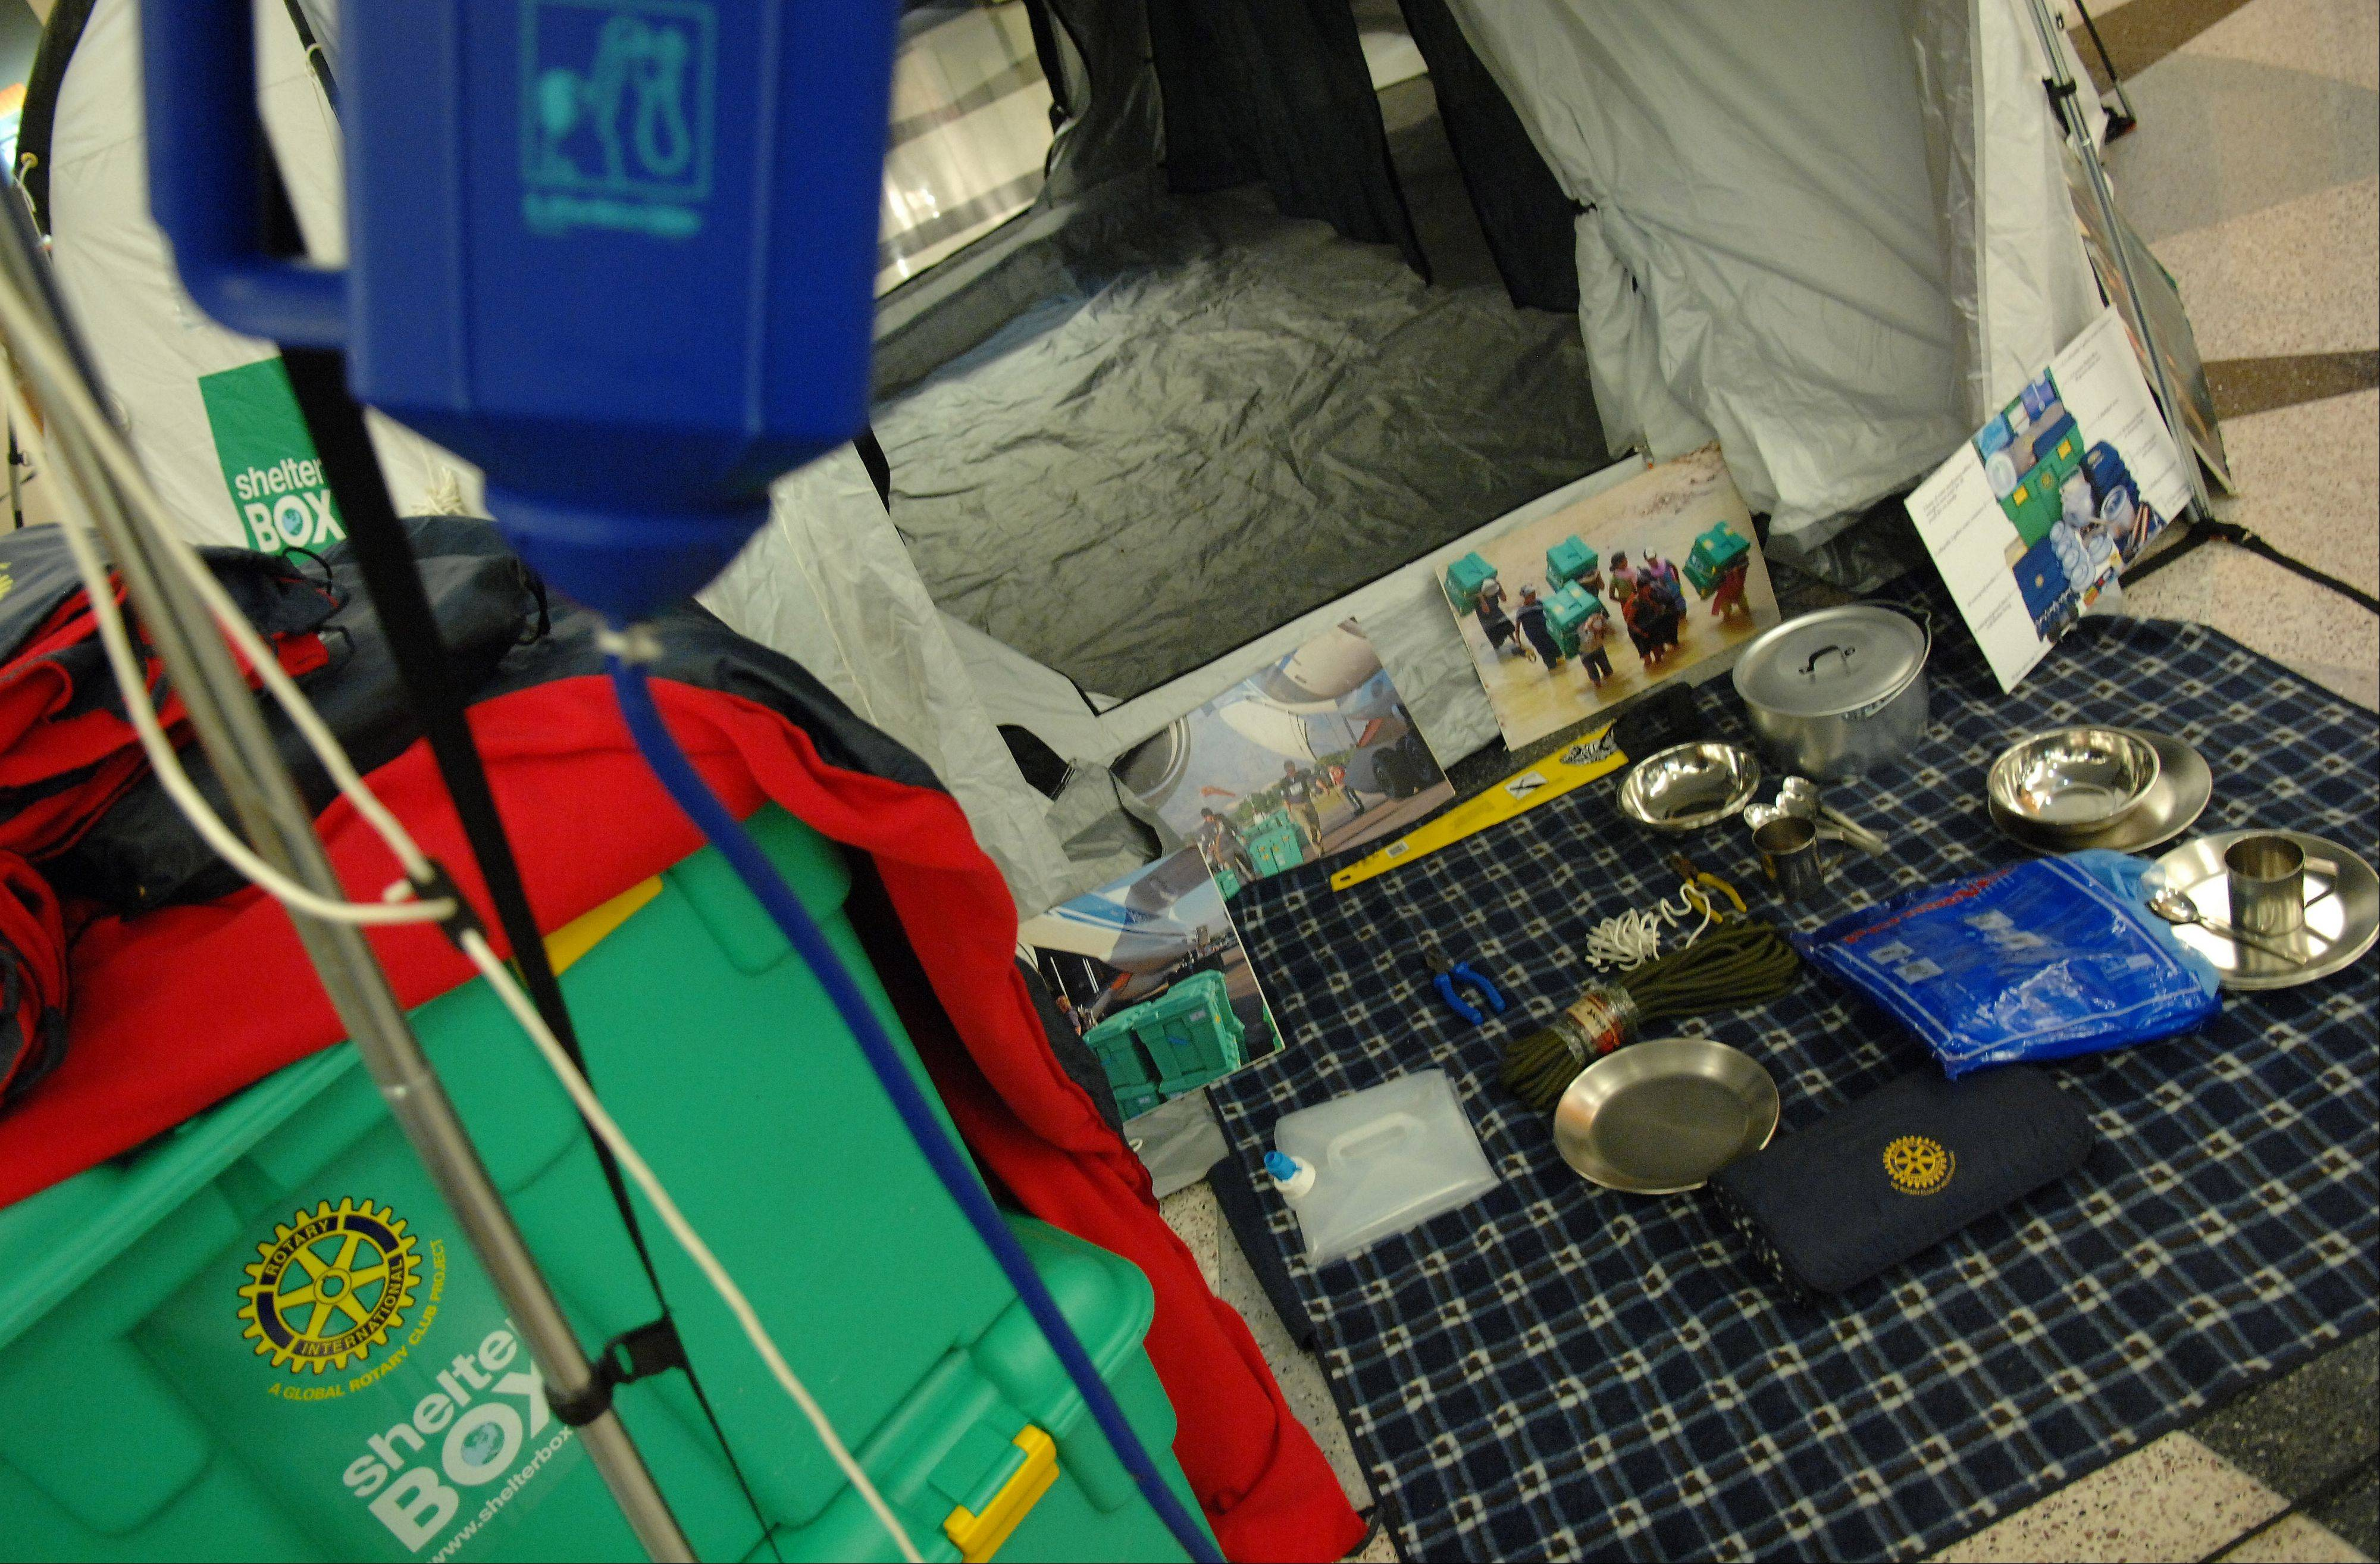 A single Shelter Box includes a 10-person tent and a range of survival goods including thermal blankets, a wood-burning stove and water purification equipment.